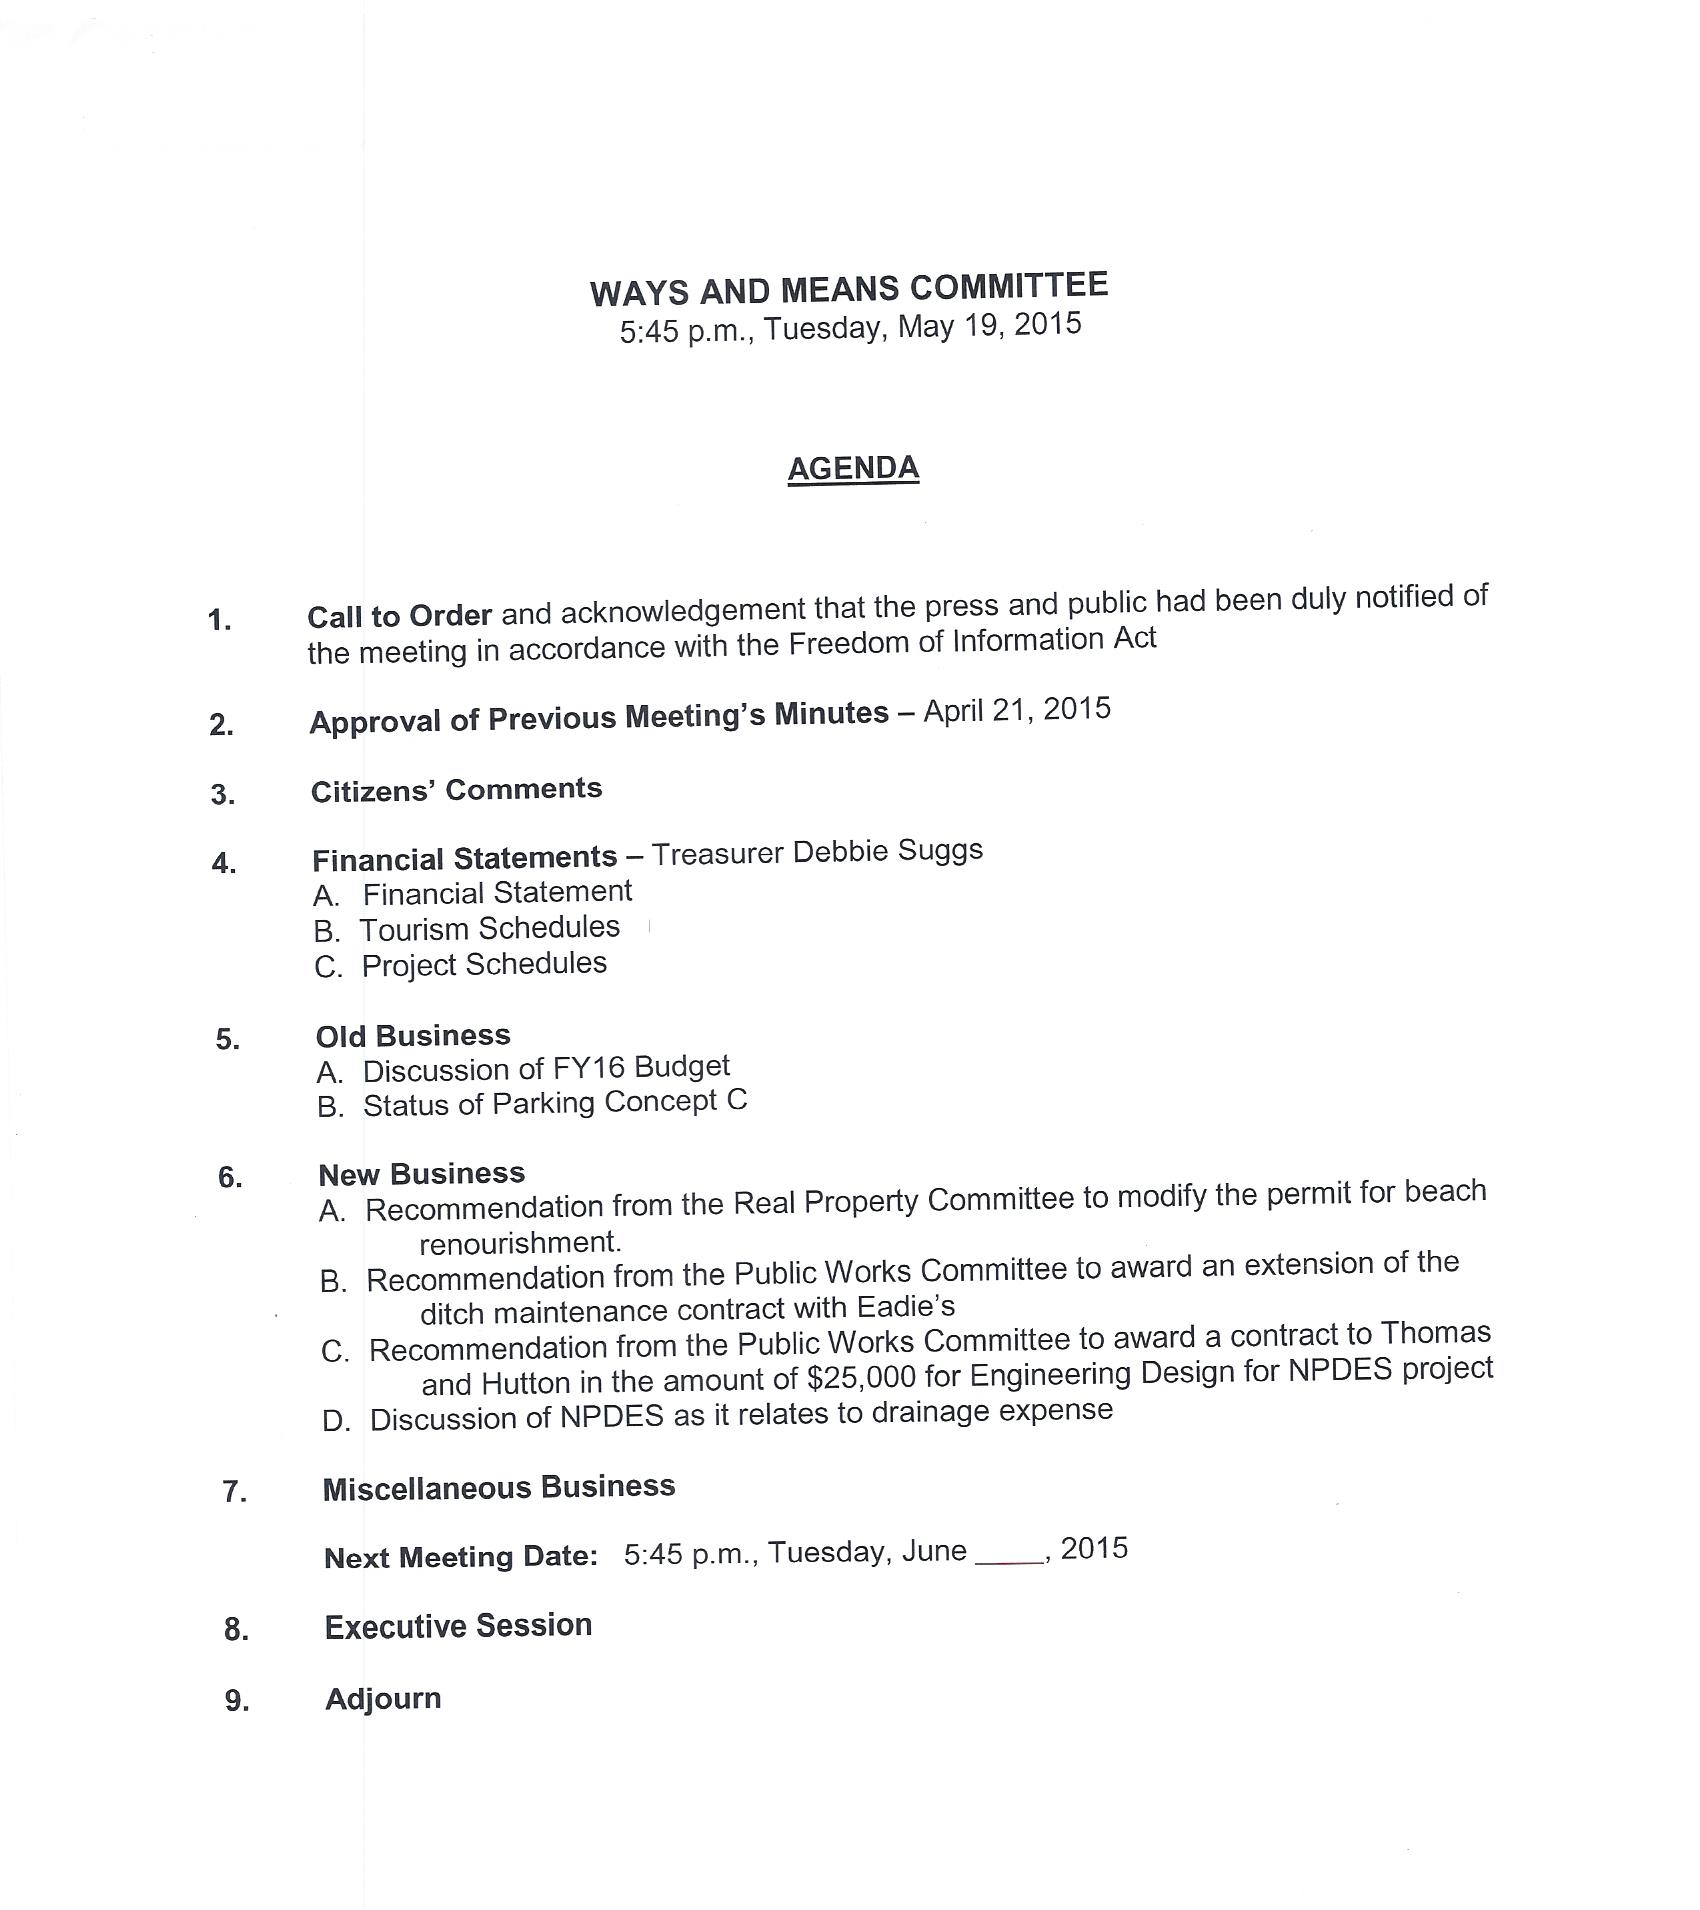 iop ways and means agenda for may 19th, 2015 | iop today - current